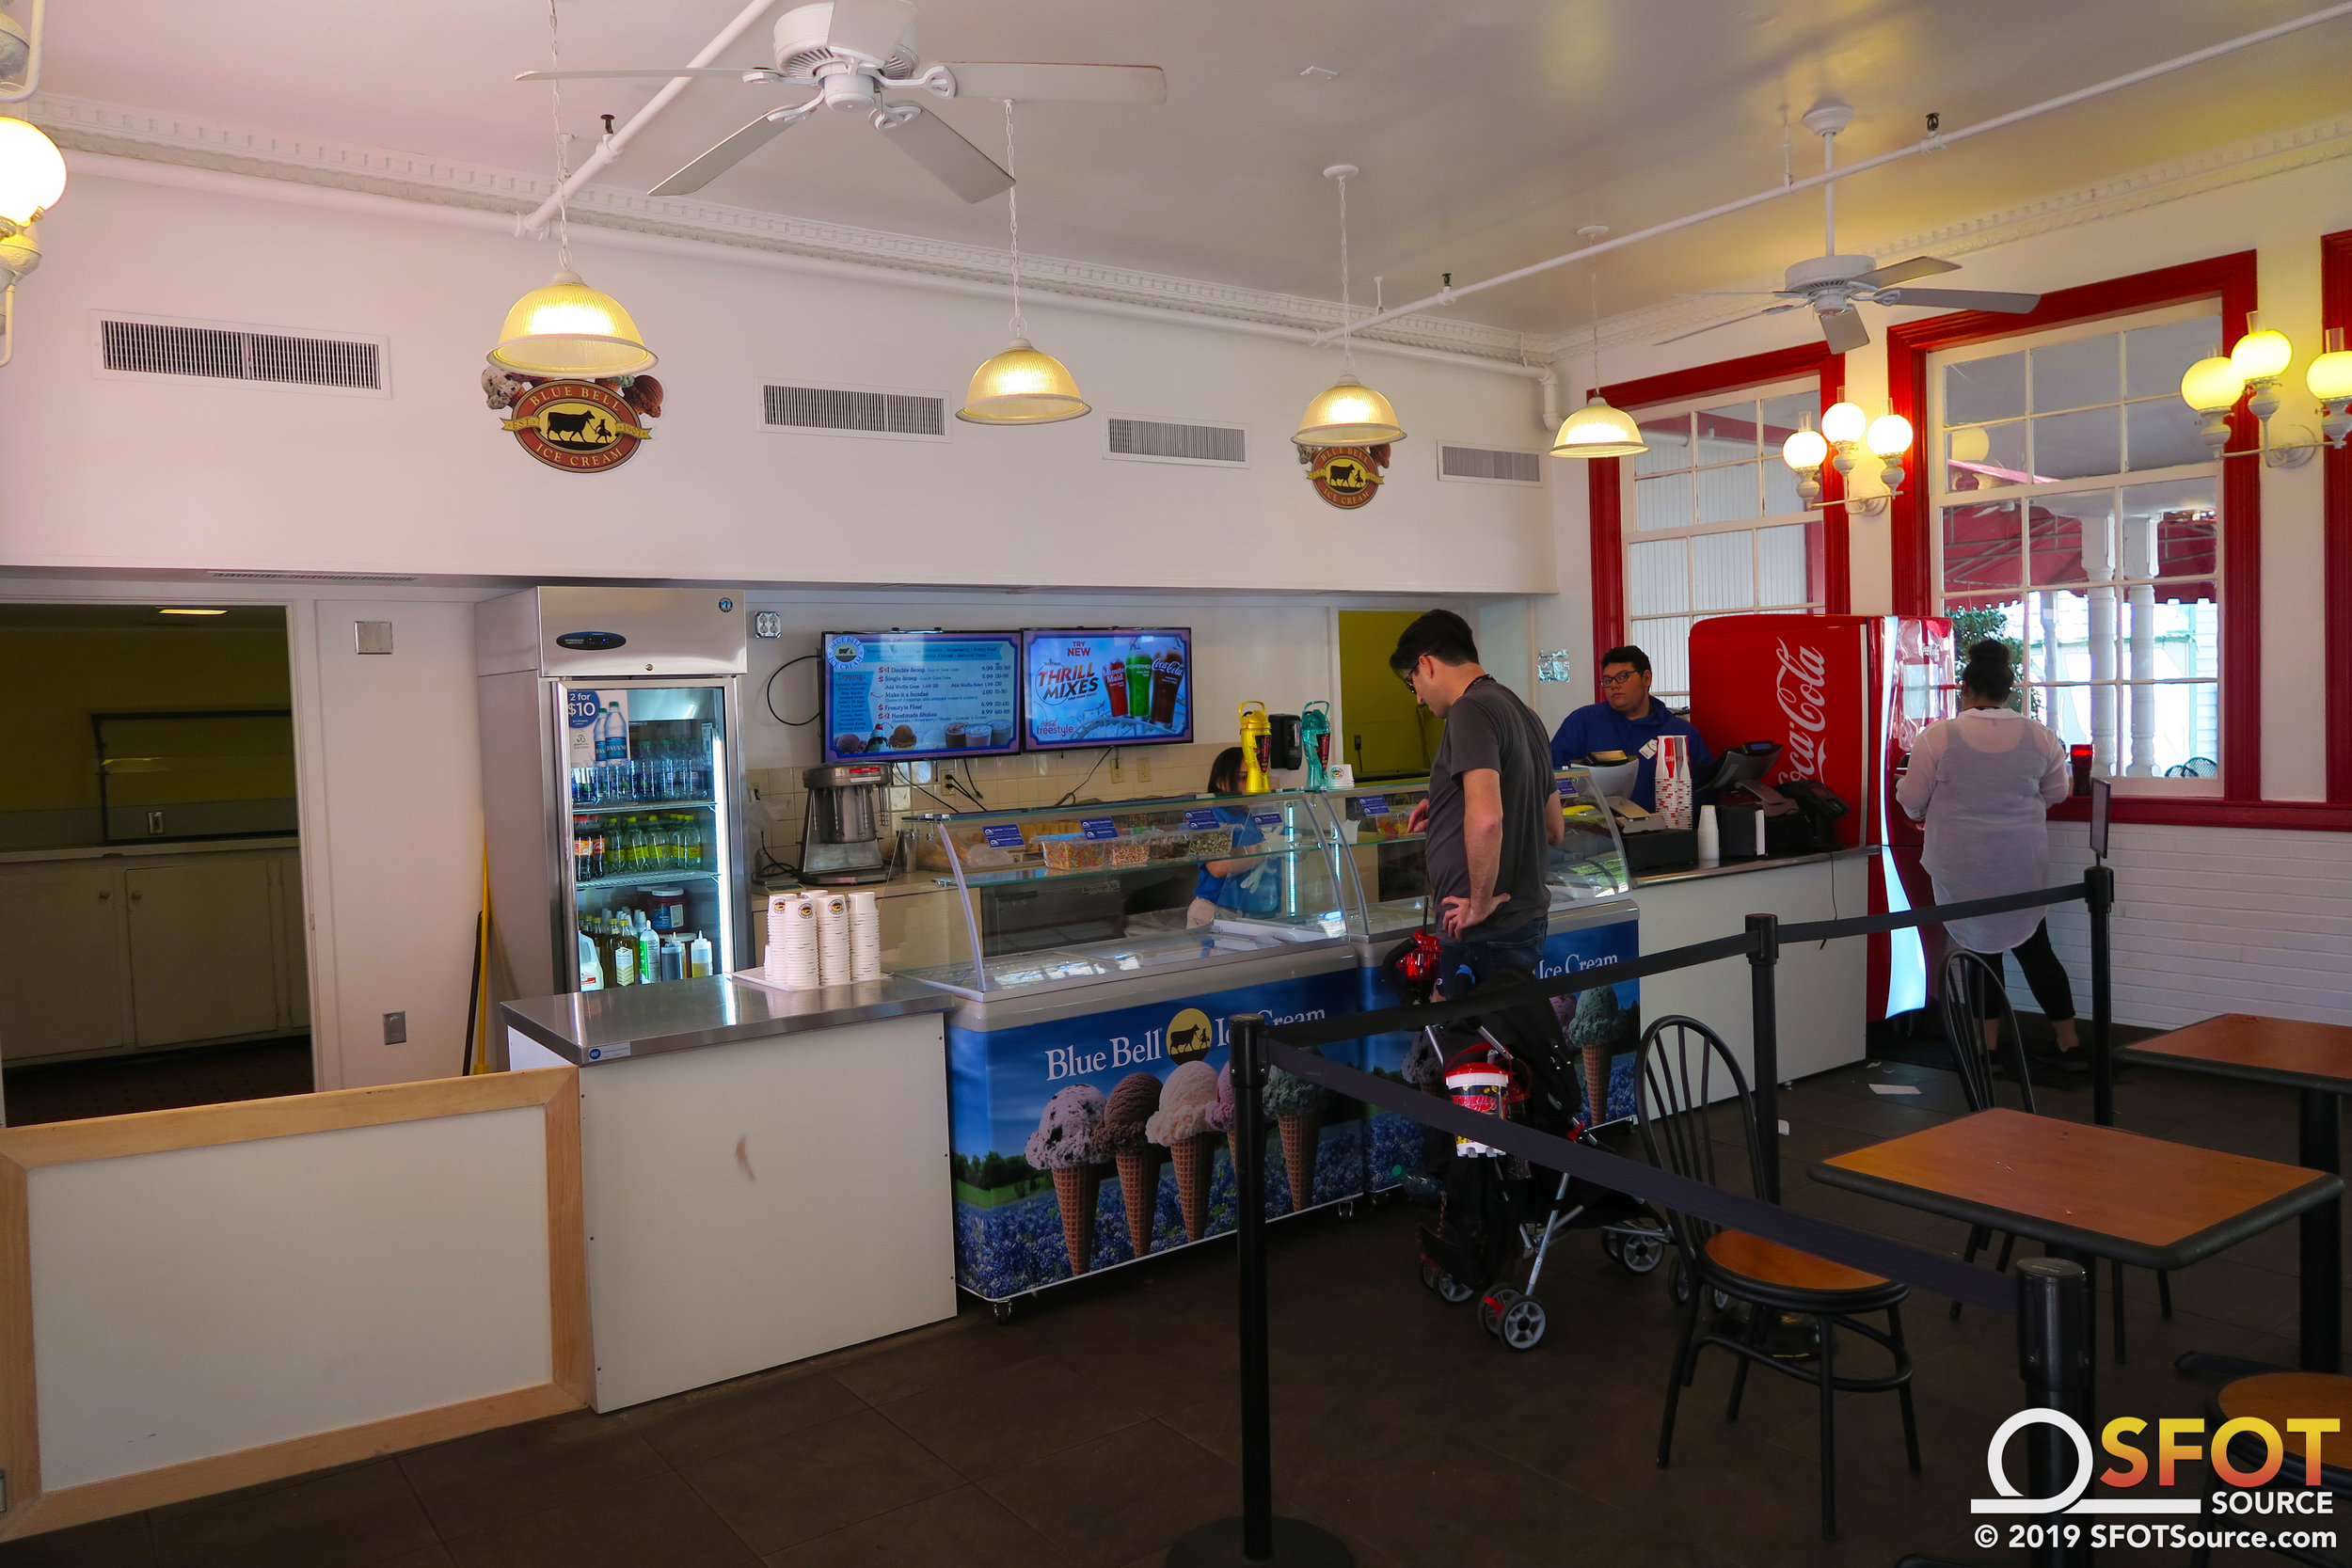 This dining location features ice cream and a Coca-Cola Freestyle for season drink bottle refills.